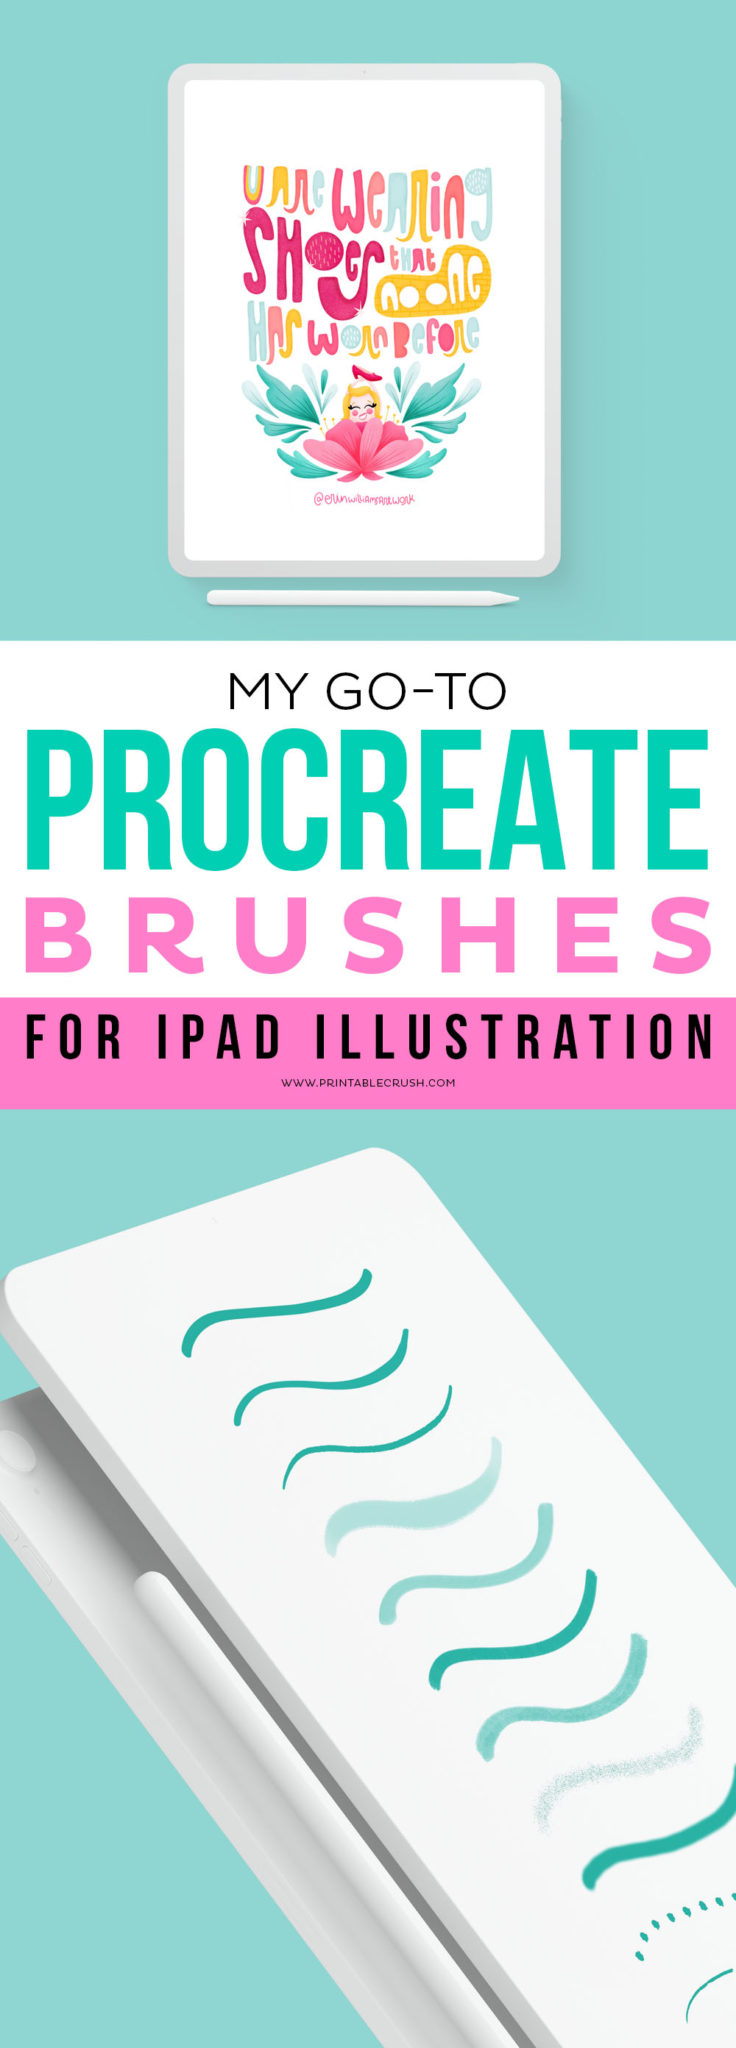 Top Procreate Brushes for iPad Illustration